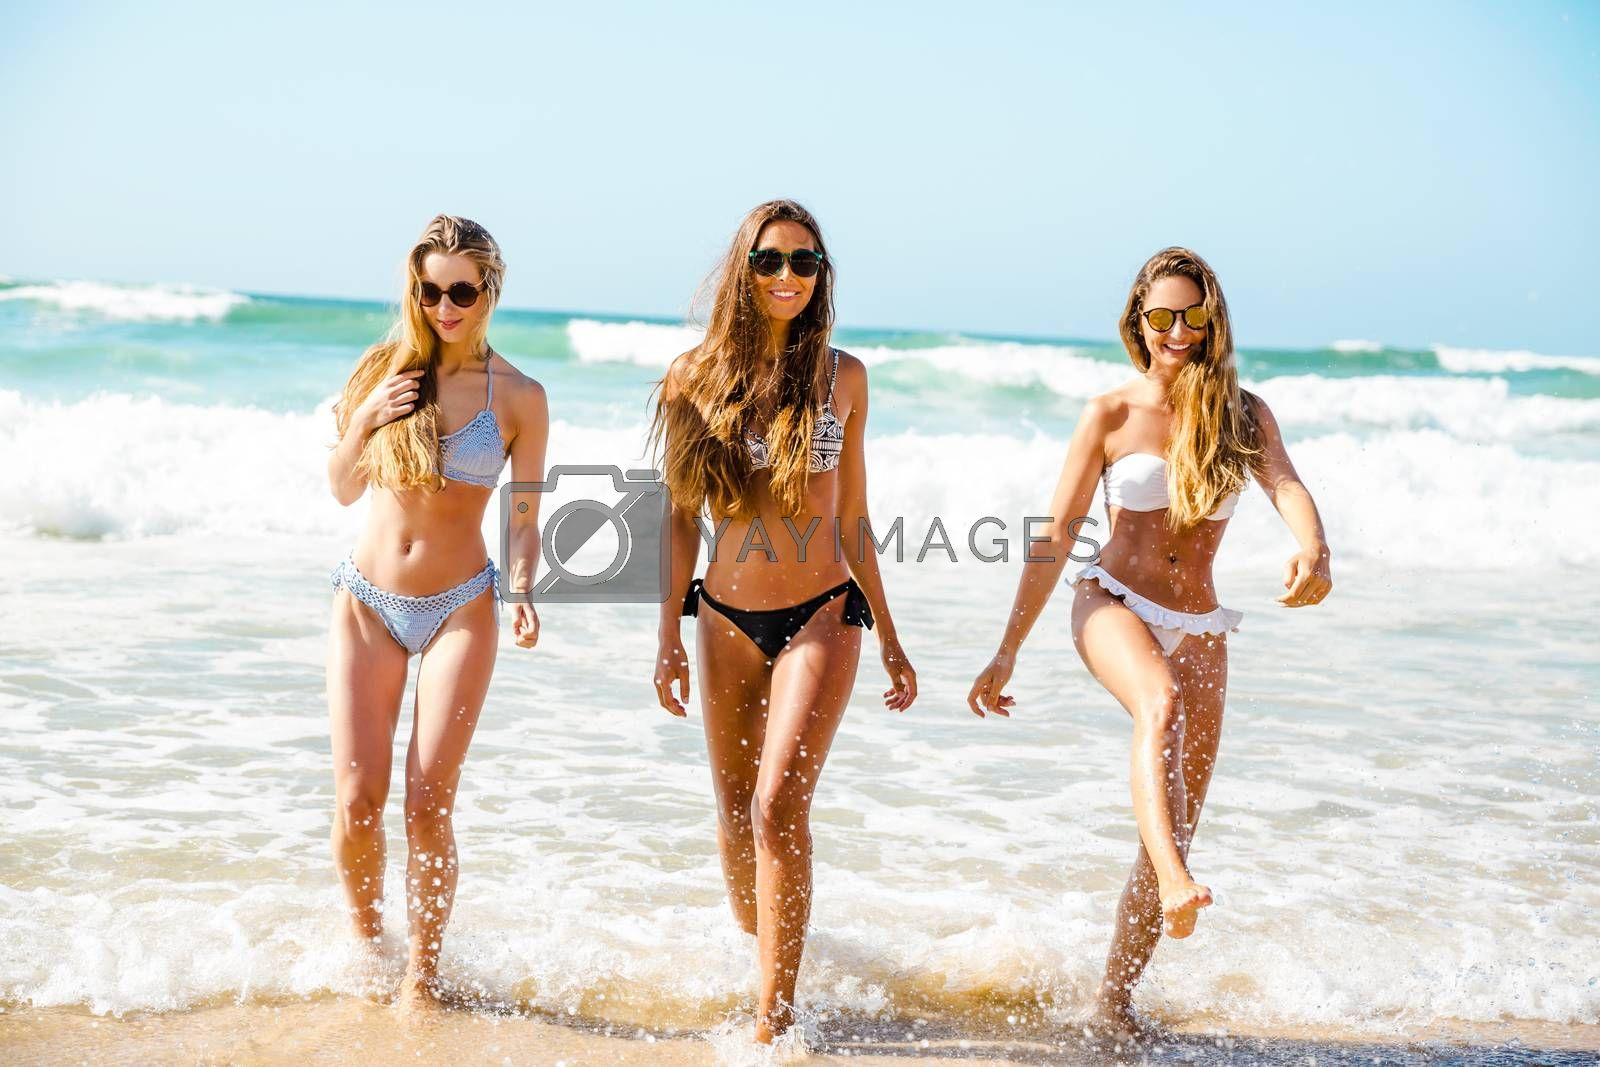 Beautiful girls in the beach having fun on the water